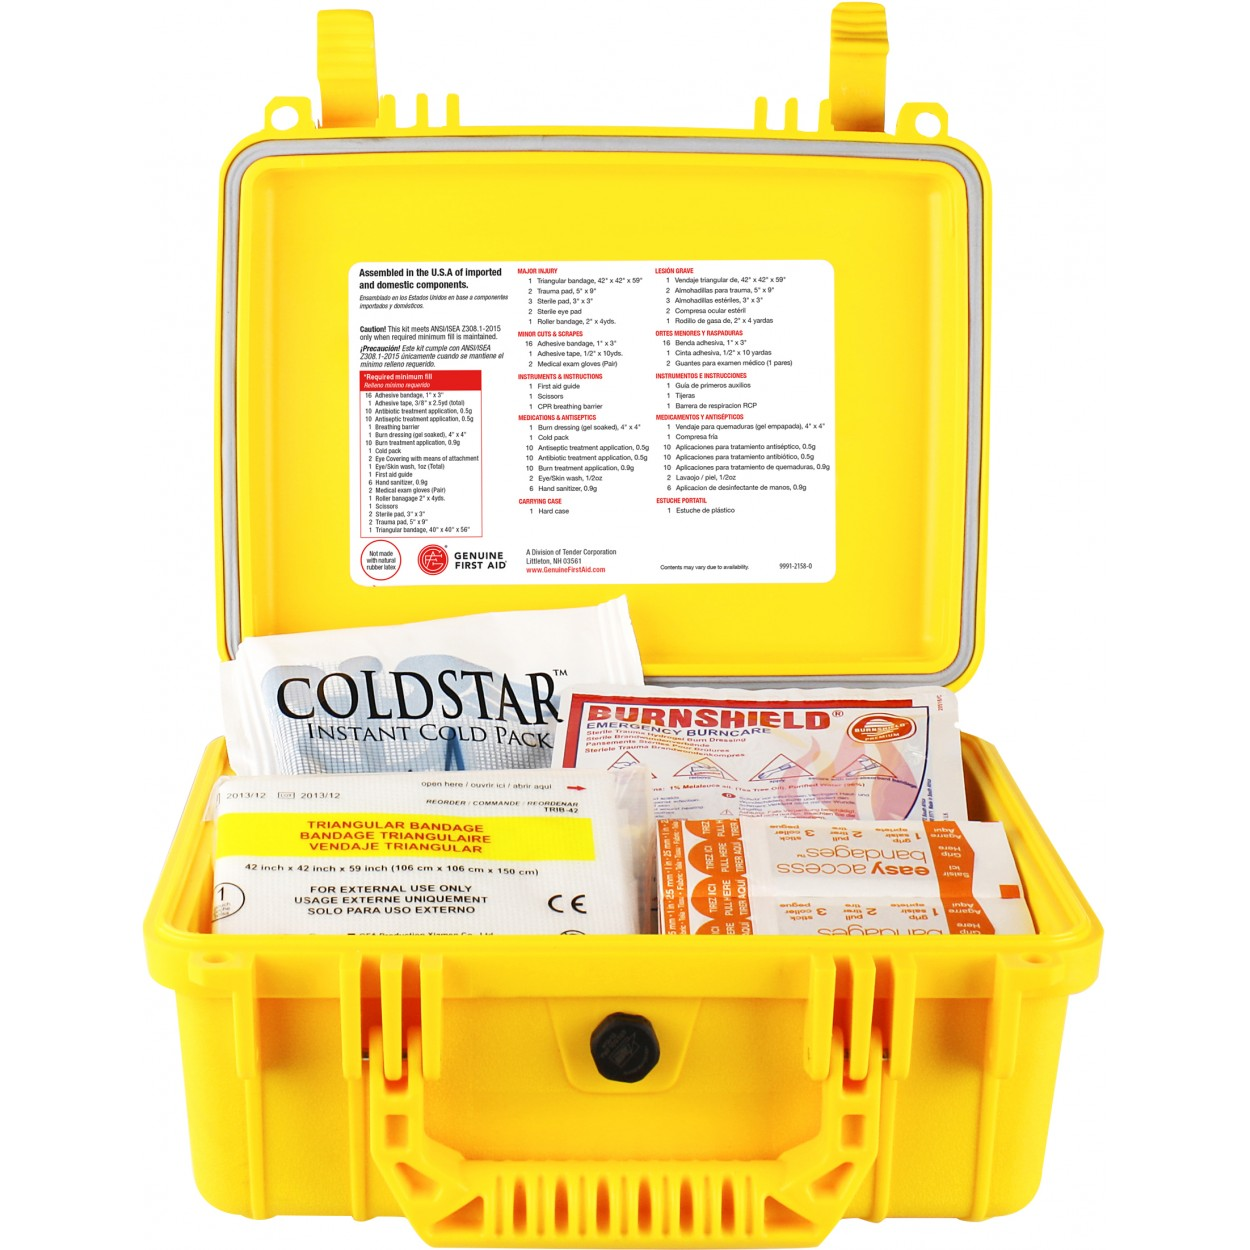 25 Person ANSI Class A Type IV Waterproof First Aid Kit